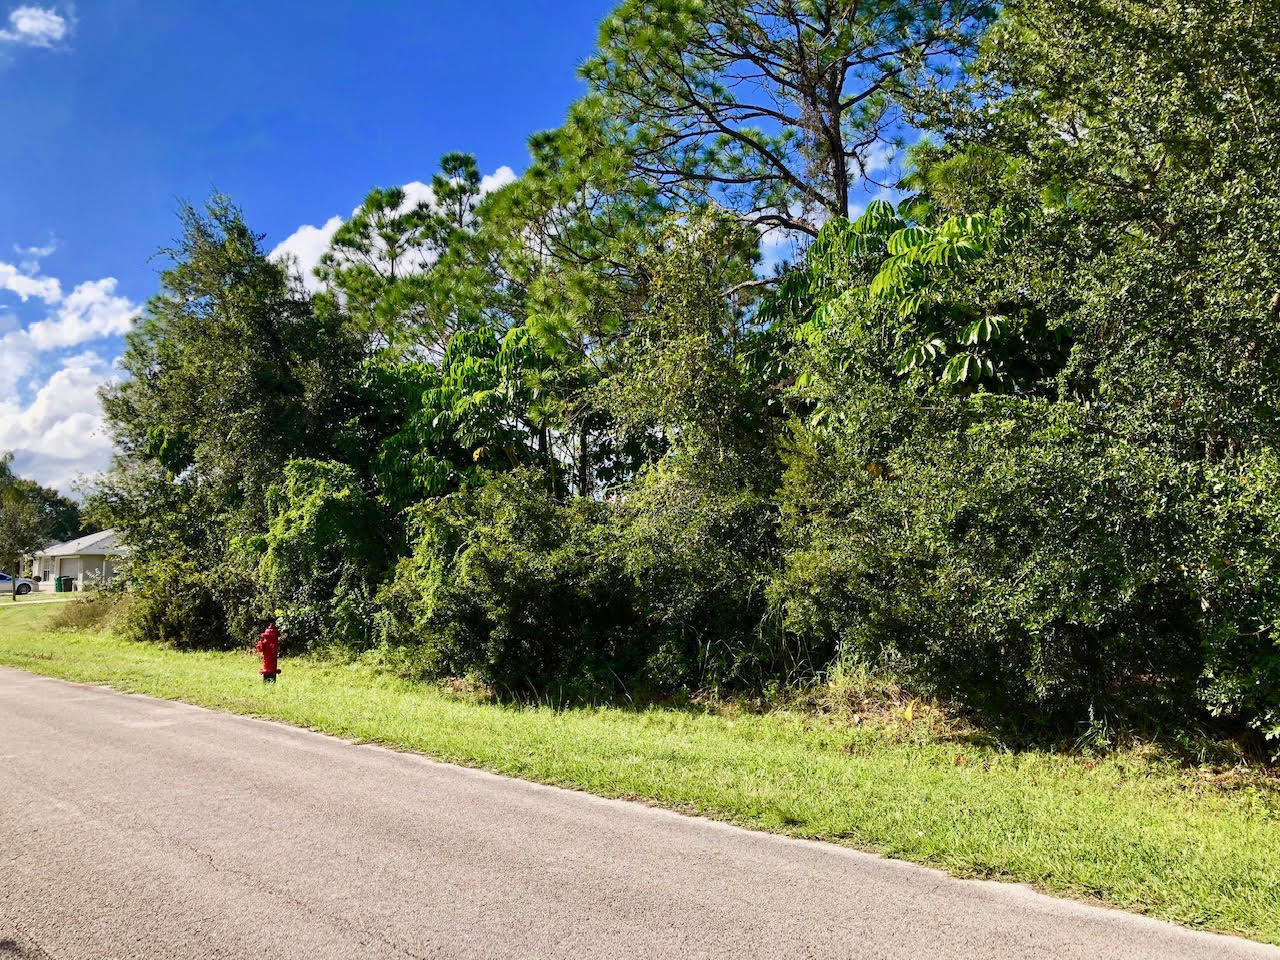 Home for sale in PORT ST LUCIE SECTION 13, BLK 666, LOT 6 Port Saint Lucie Florida